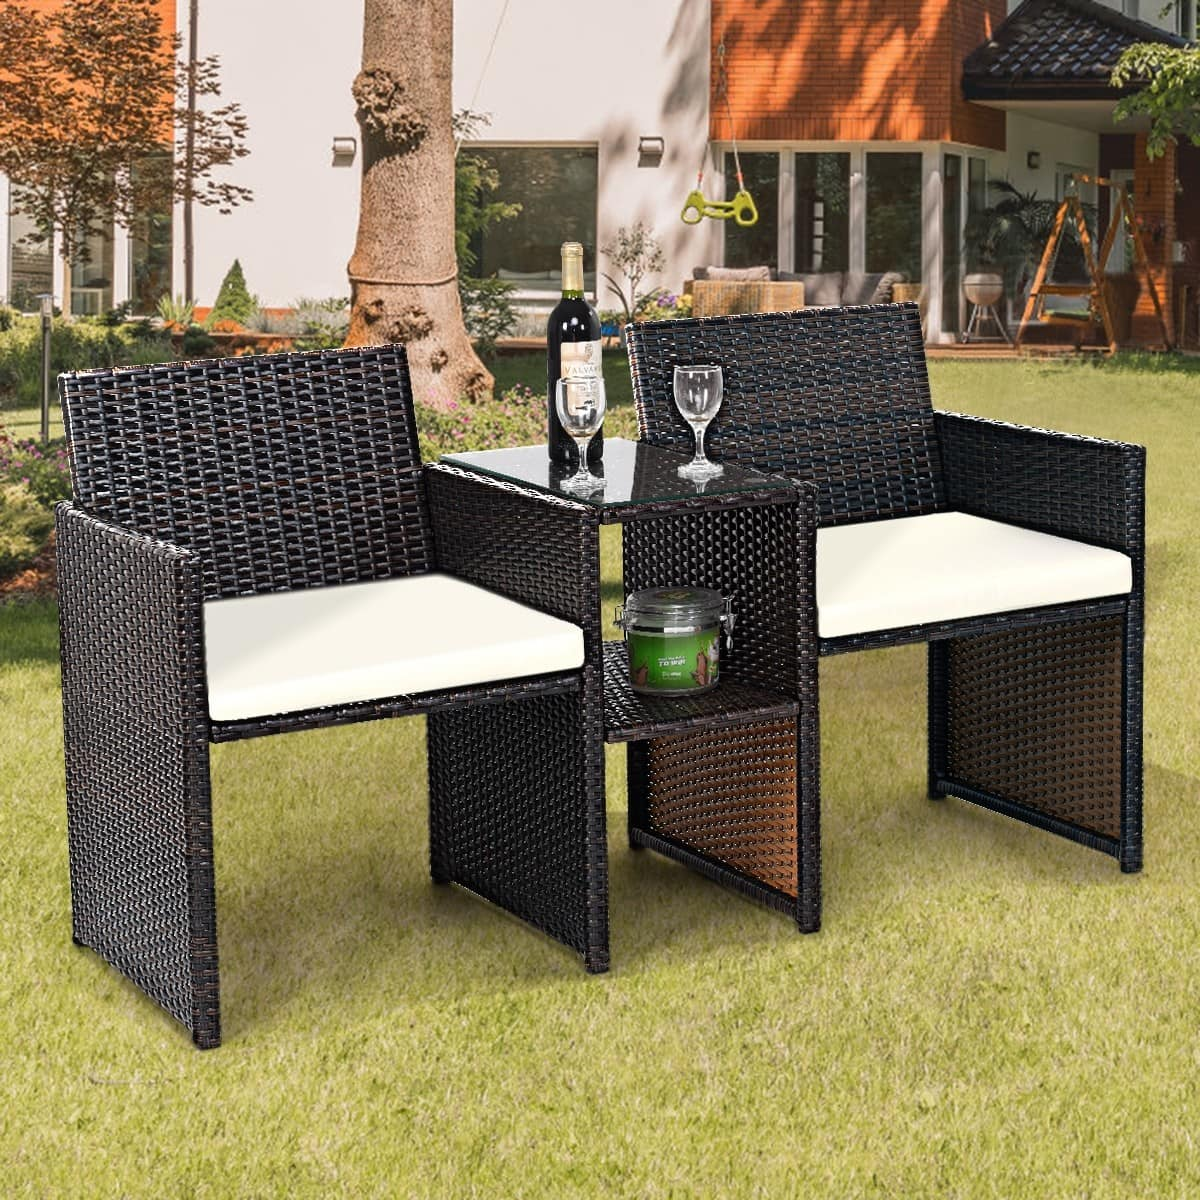 Costway Patio Rattan Conversation Cushioned Seat Sofa Set - $119.95 + Free Shipping